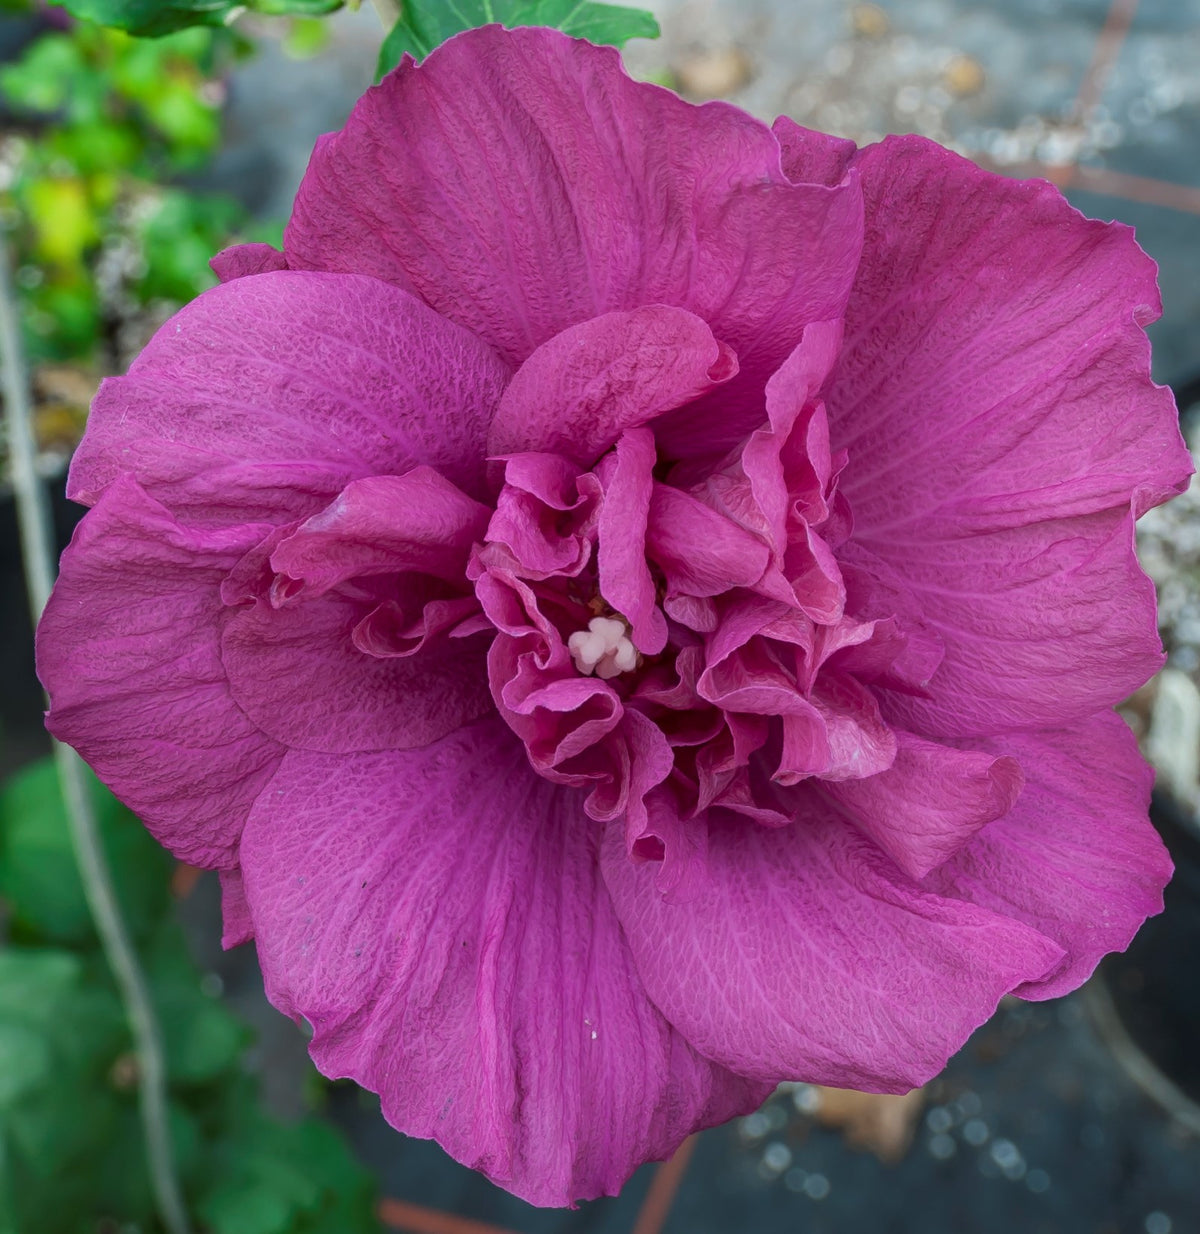 Proven Winners® Shrub Plants|Hibiscus - Magenta Chiffon Rose of Sharon 1